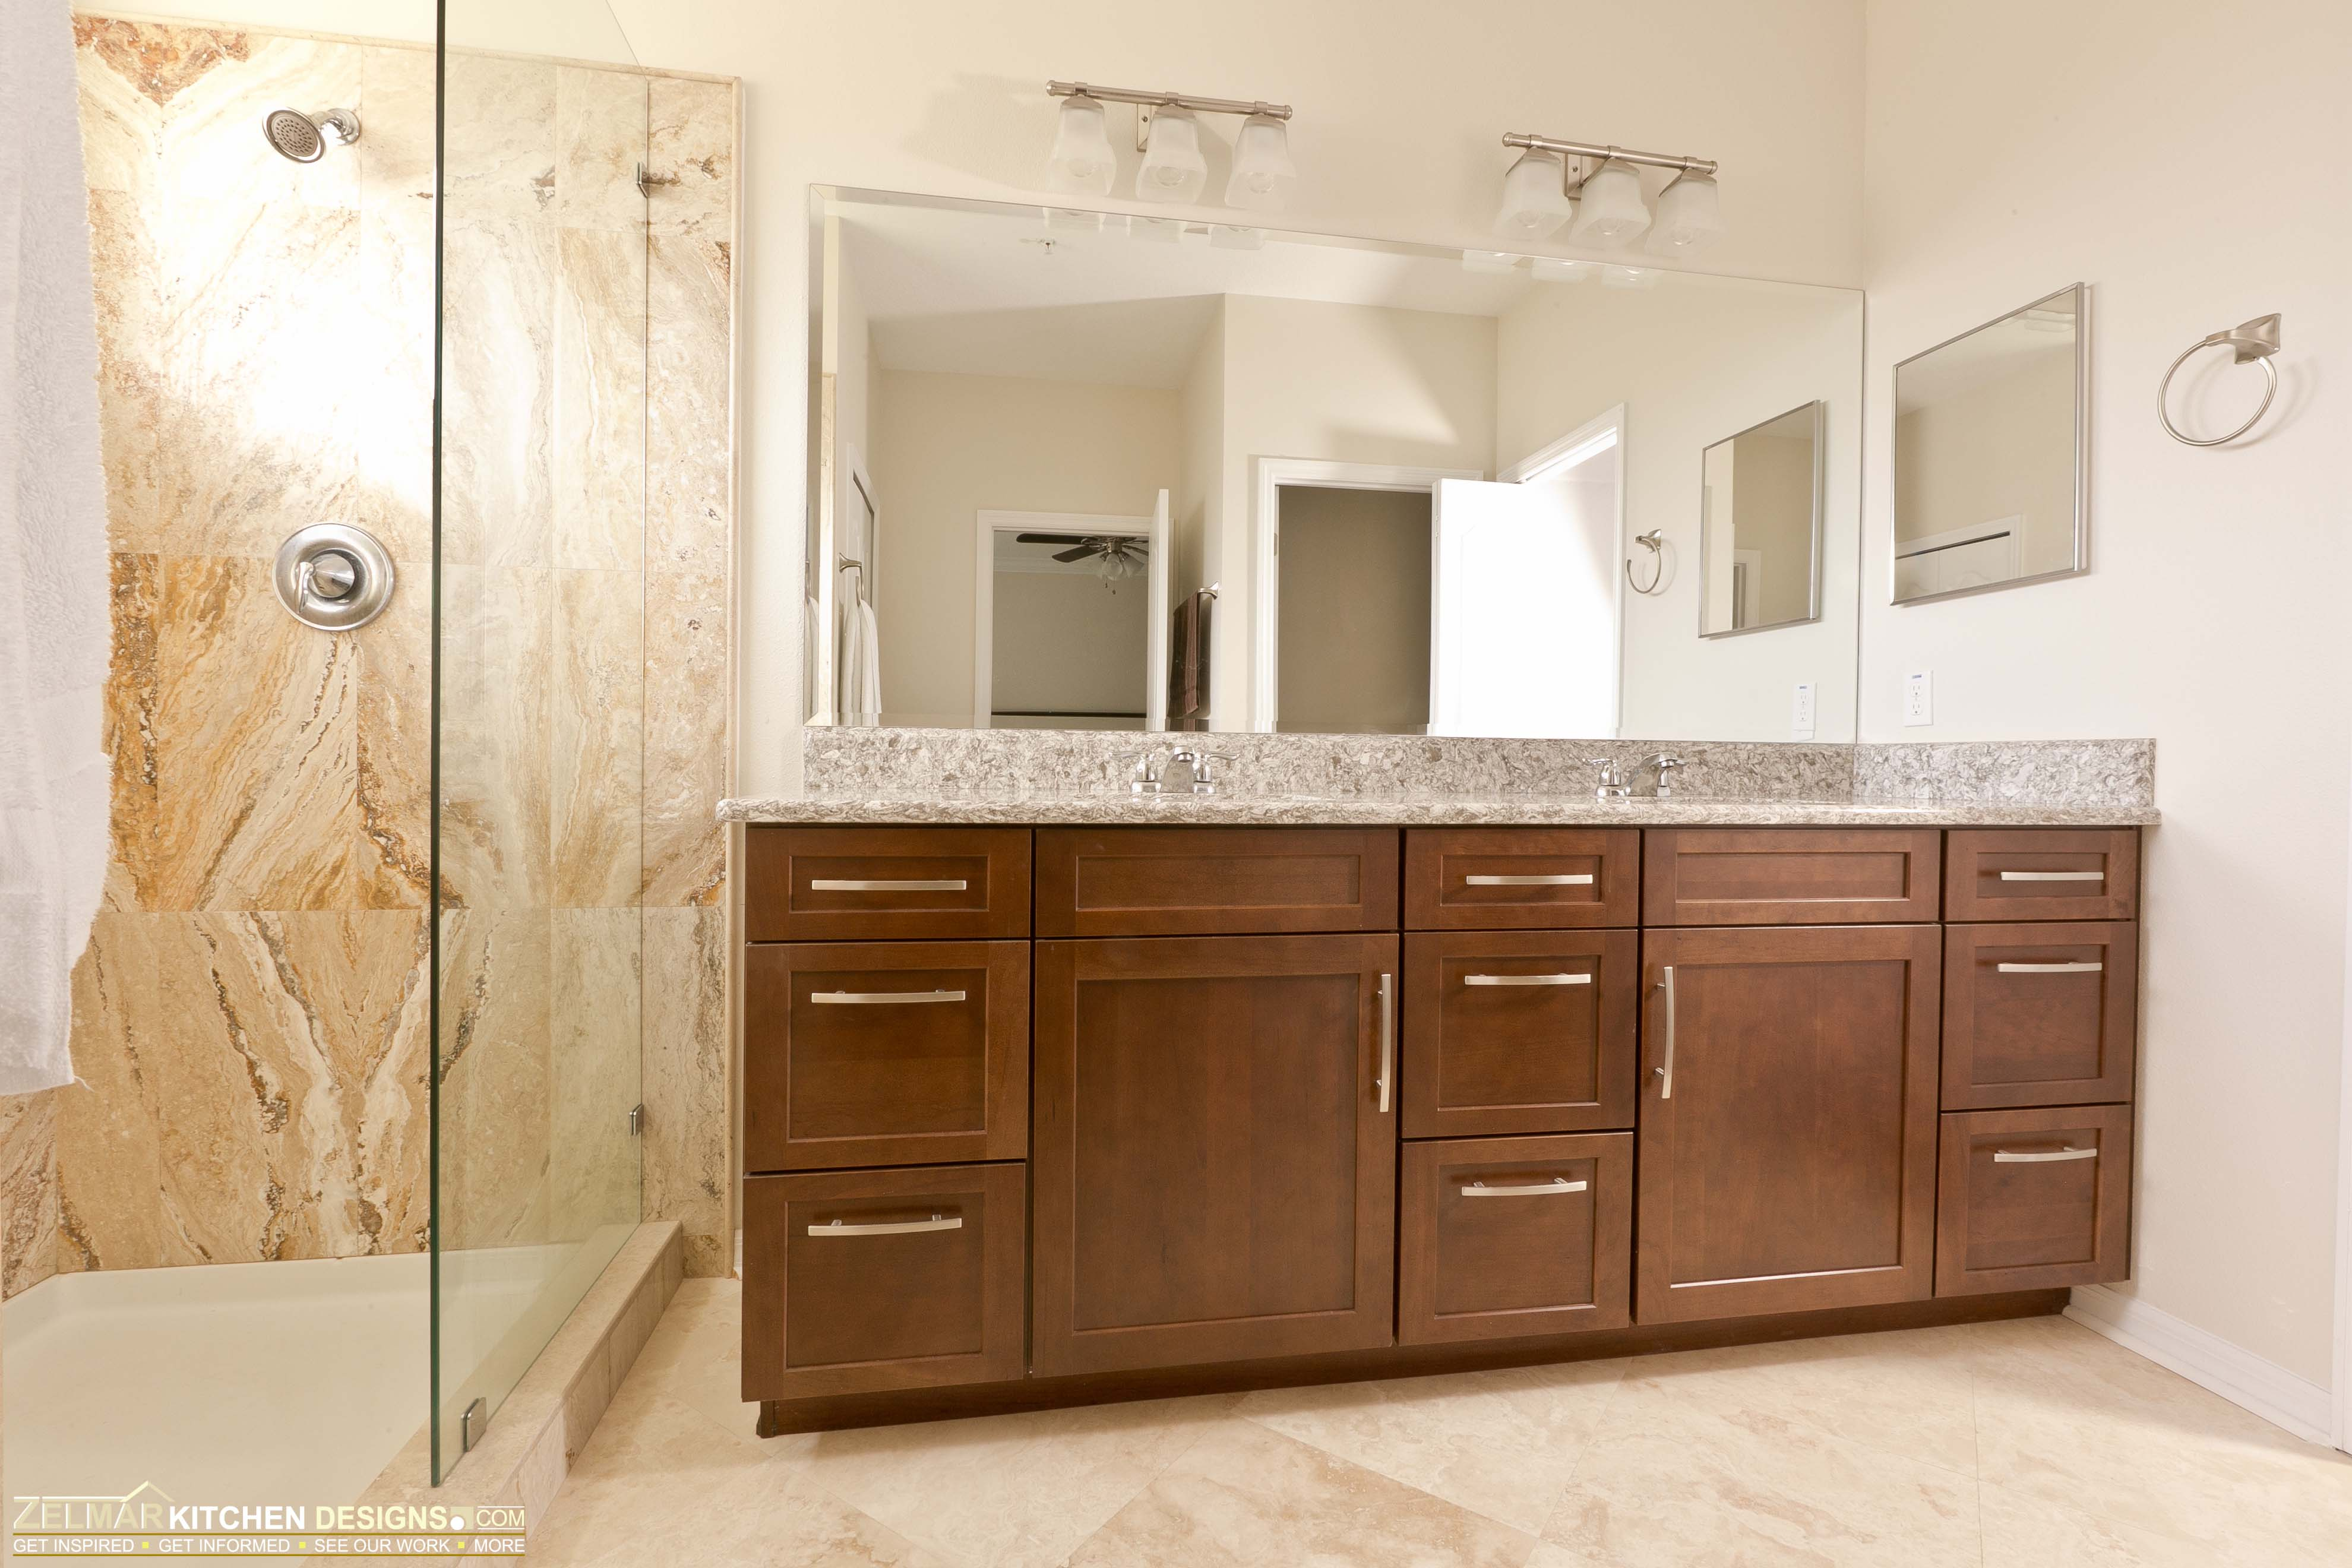 Comfortable Tile Backsplash In Bathroom Pictures Thick Bathtub 60 X 32 X 21 Regular Master Bath Remodel Plans Bathroom Mirror Circle Old Kitchen And Bathroom Edmonton DarkMemento Bathroom Scene Waypoint Living Spaces | Zelmar Kitchen Designs \u0026amp; More